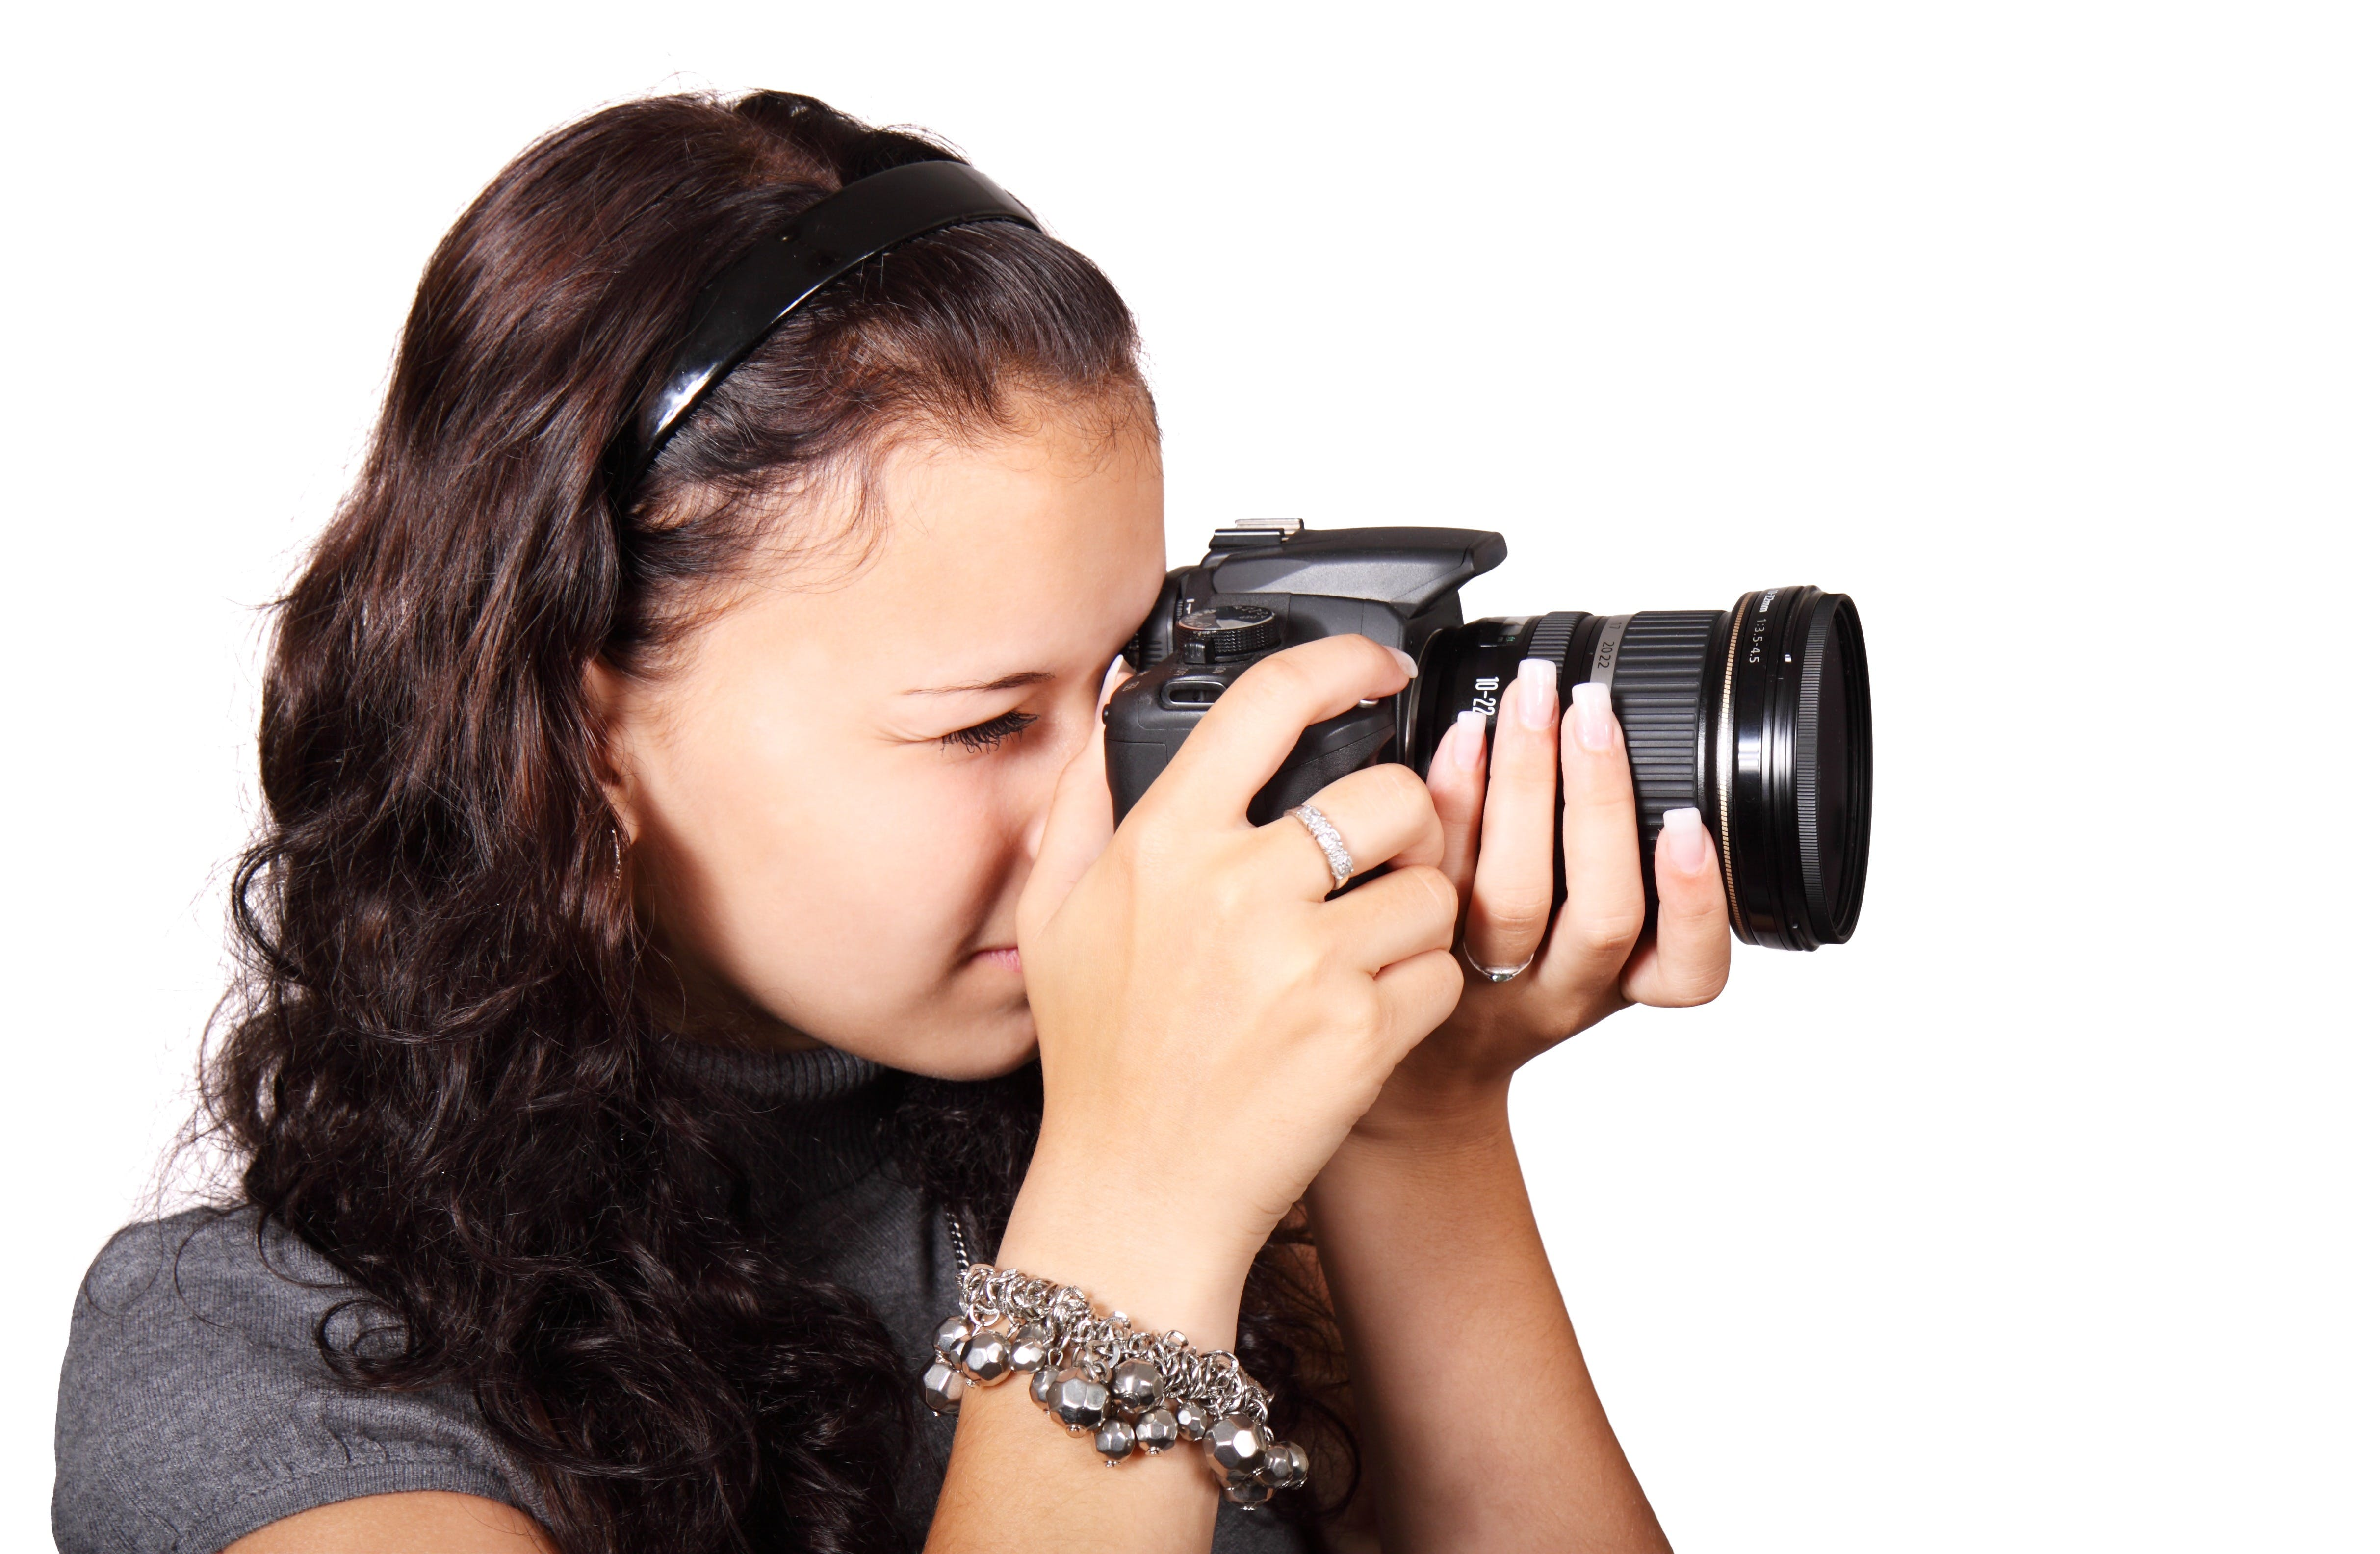 Woman Taking Picture With Her Black Dslr Camera